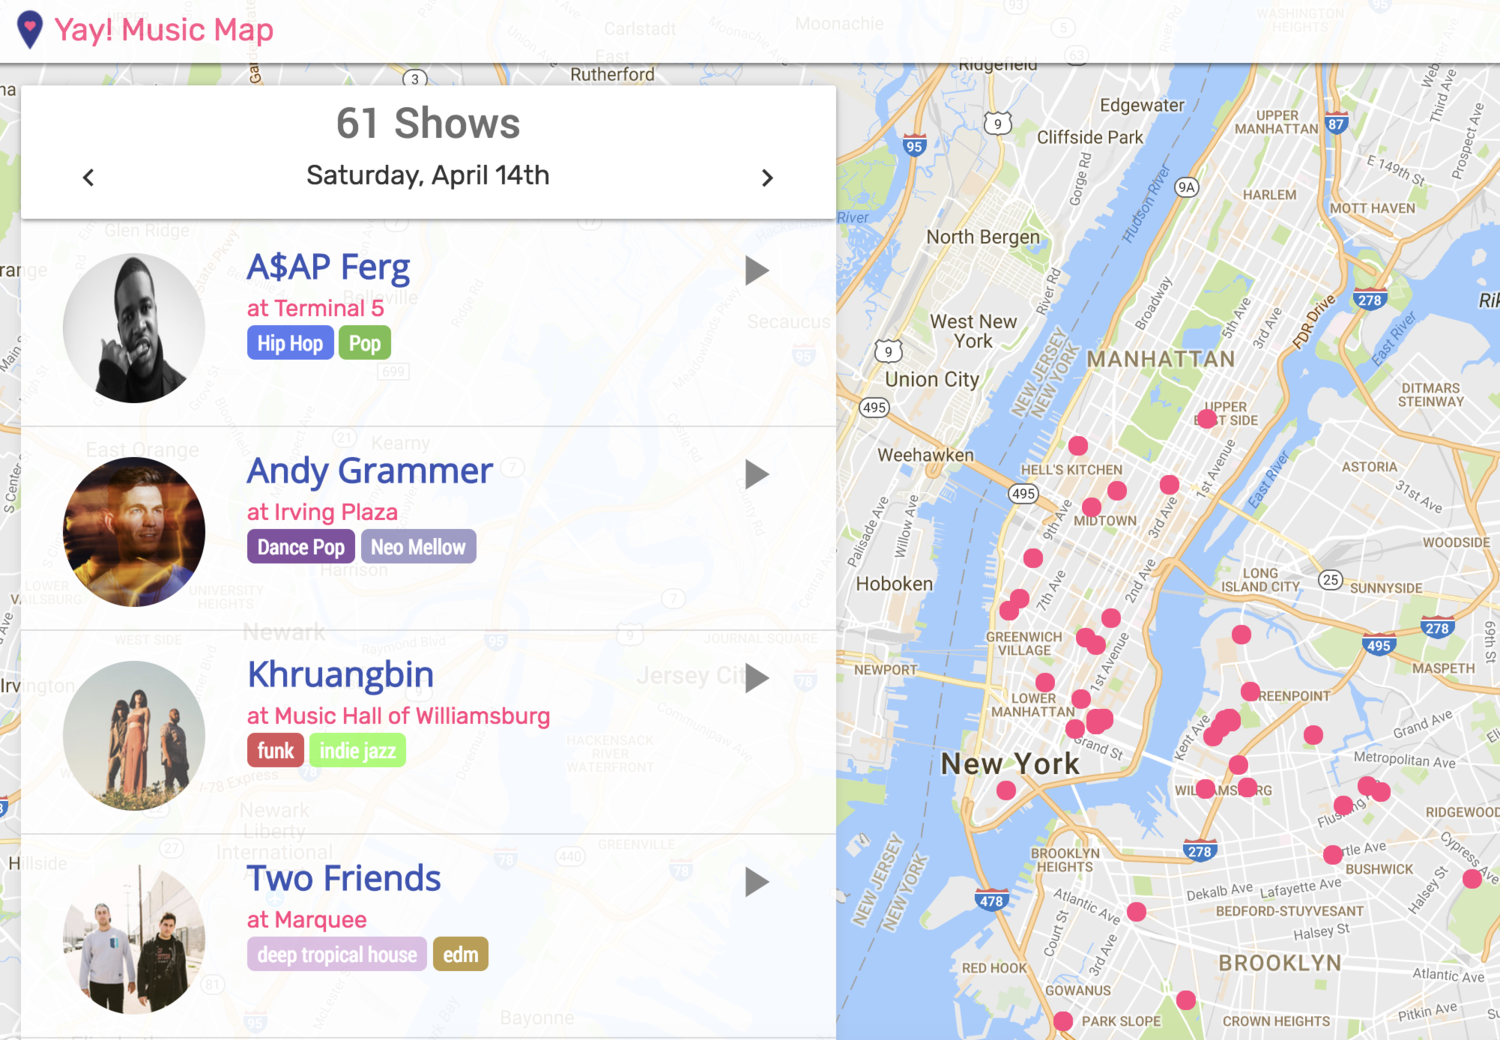 Interactive Map Of New York City.This Interactive Map Shows All New York City Concerts And Shows